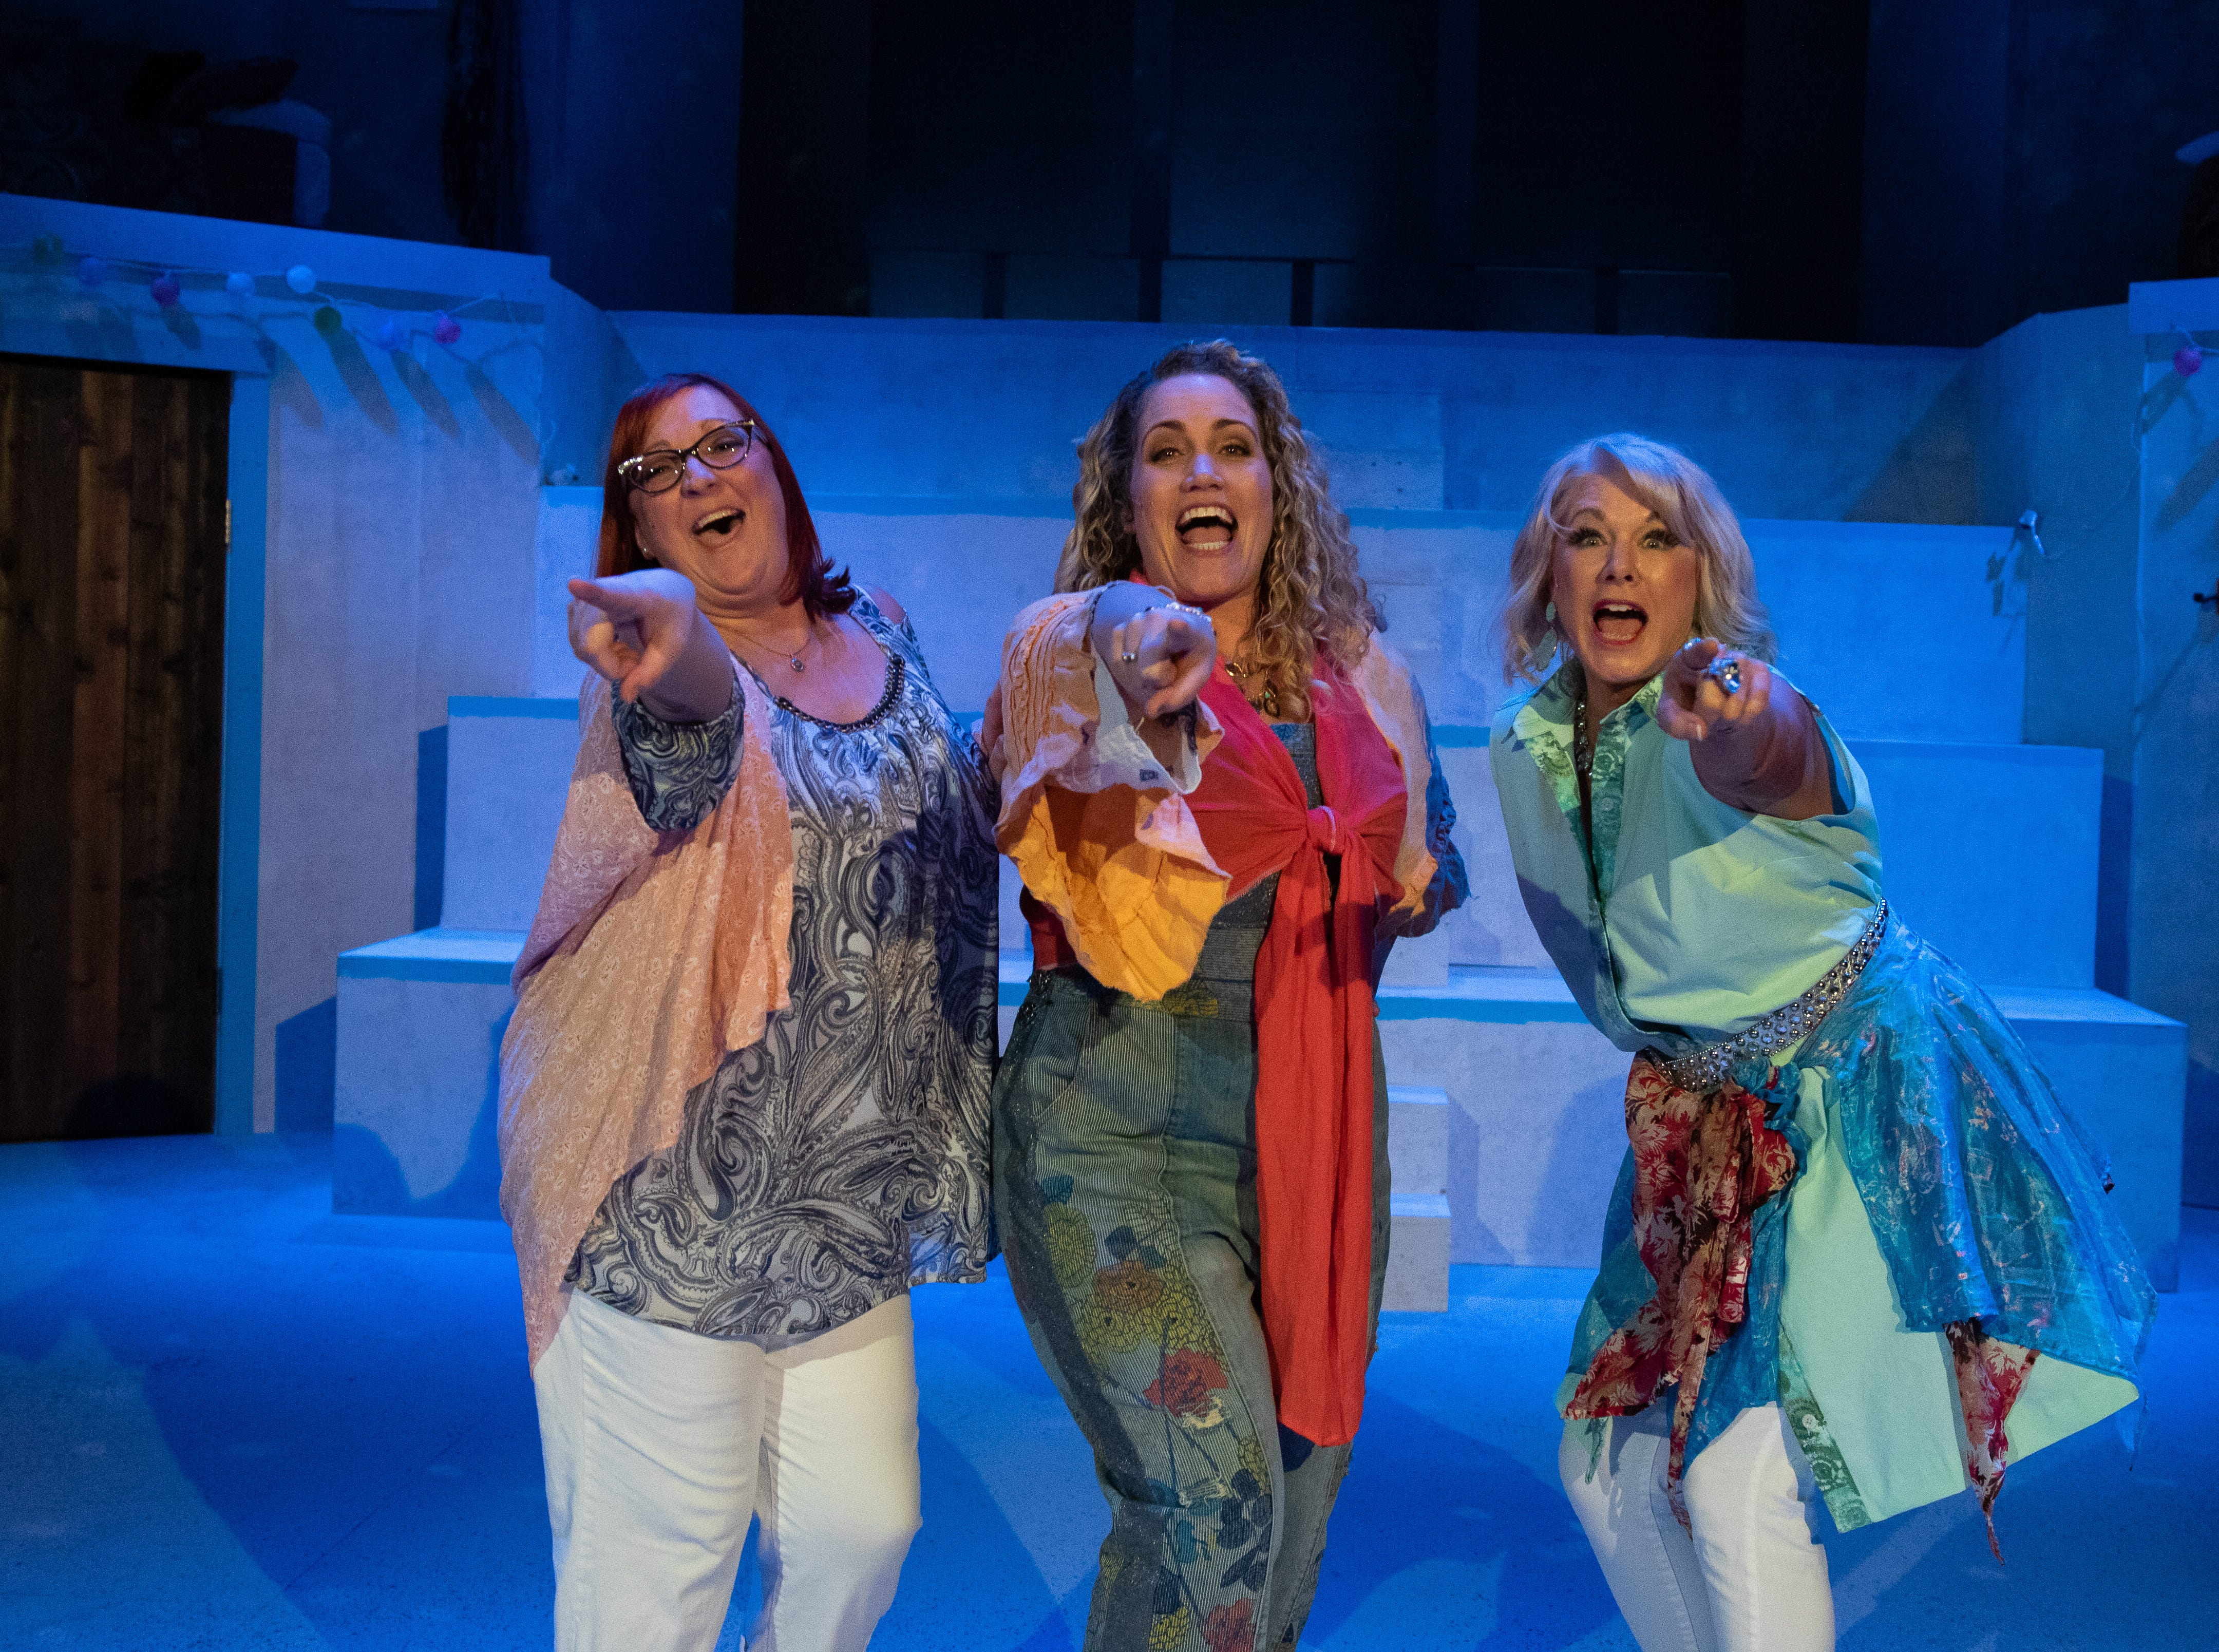 """Mamma Mia!"": A musical set in Greece following a young bride-to-be who is trying to figure out which of three men from her mother's past is her father. Featuring ABBA's hit songs. March 1-23, Pentacle Theatre, 324 52nd Ave. NW, off Highway 22. $29-34. Buy tickets at Pentacle's downtown ticket office, 145 Liberty St. NE or 503-485-4300, from 10 a.m. to 4:30 p.m. on weekdays, or at tickets.pentacletheatre.org."